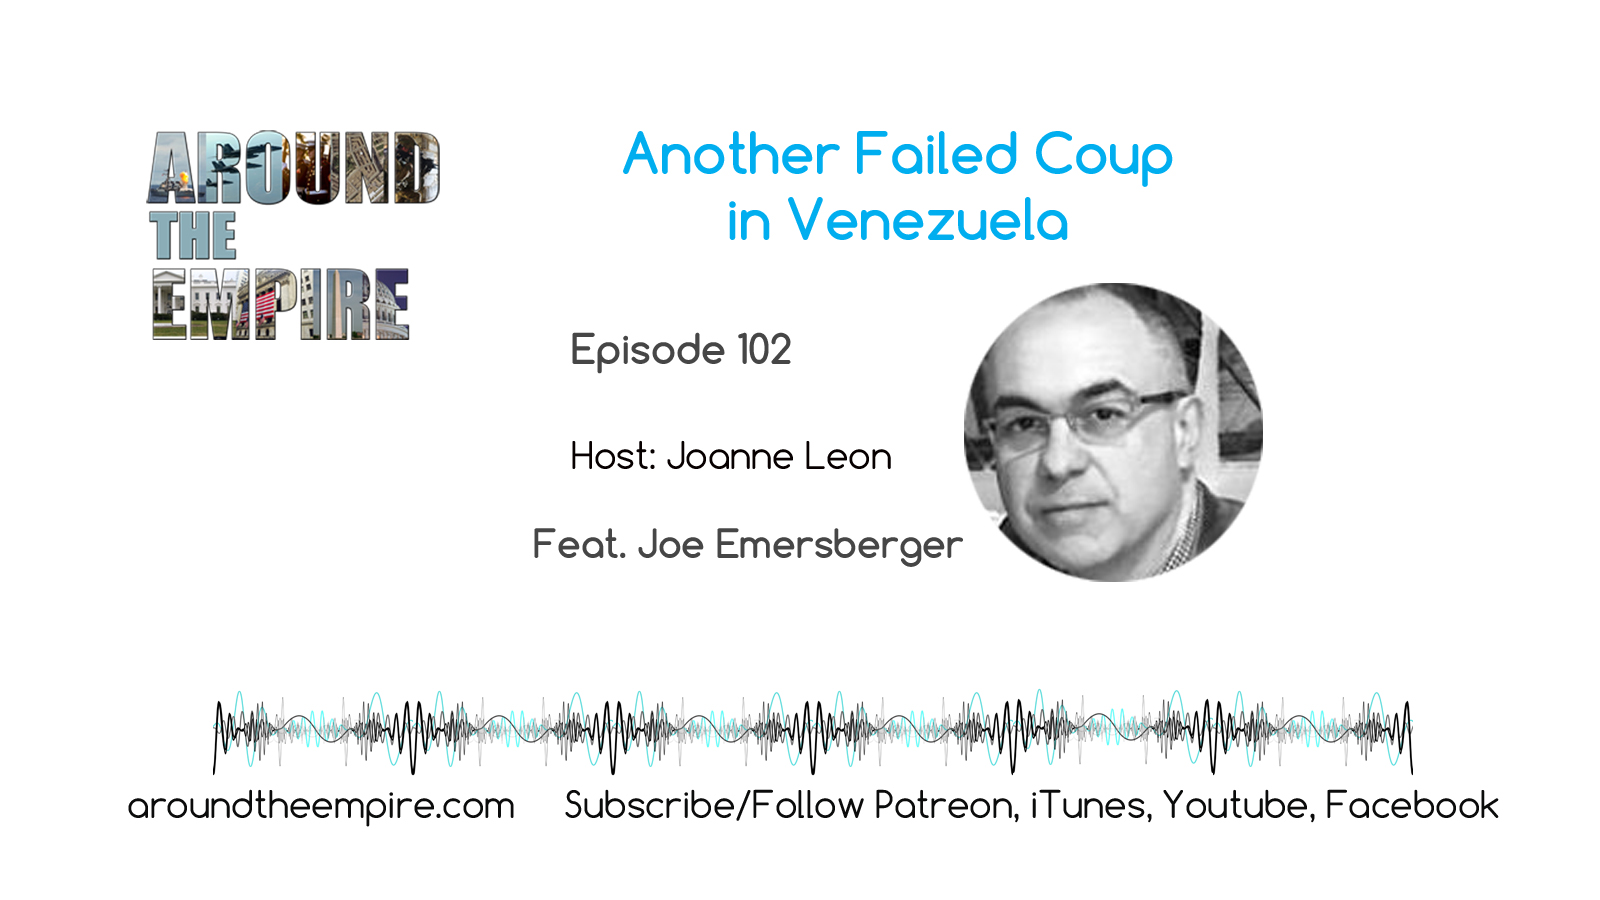 Ep102 Another Failed Coup Venezuela feat Joe Emersberger